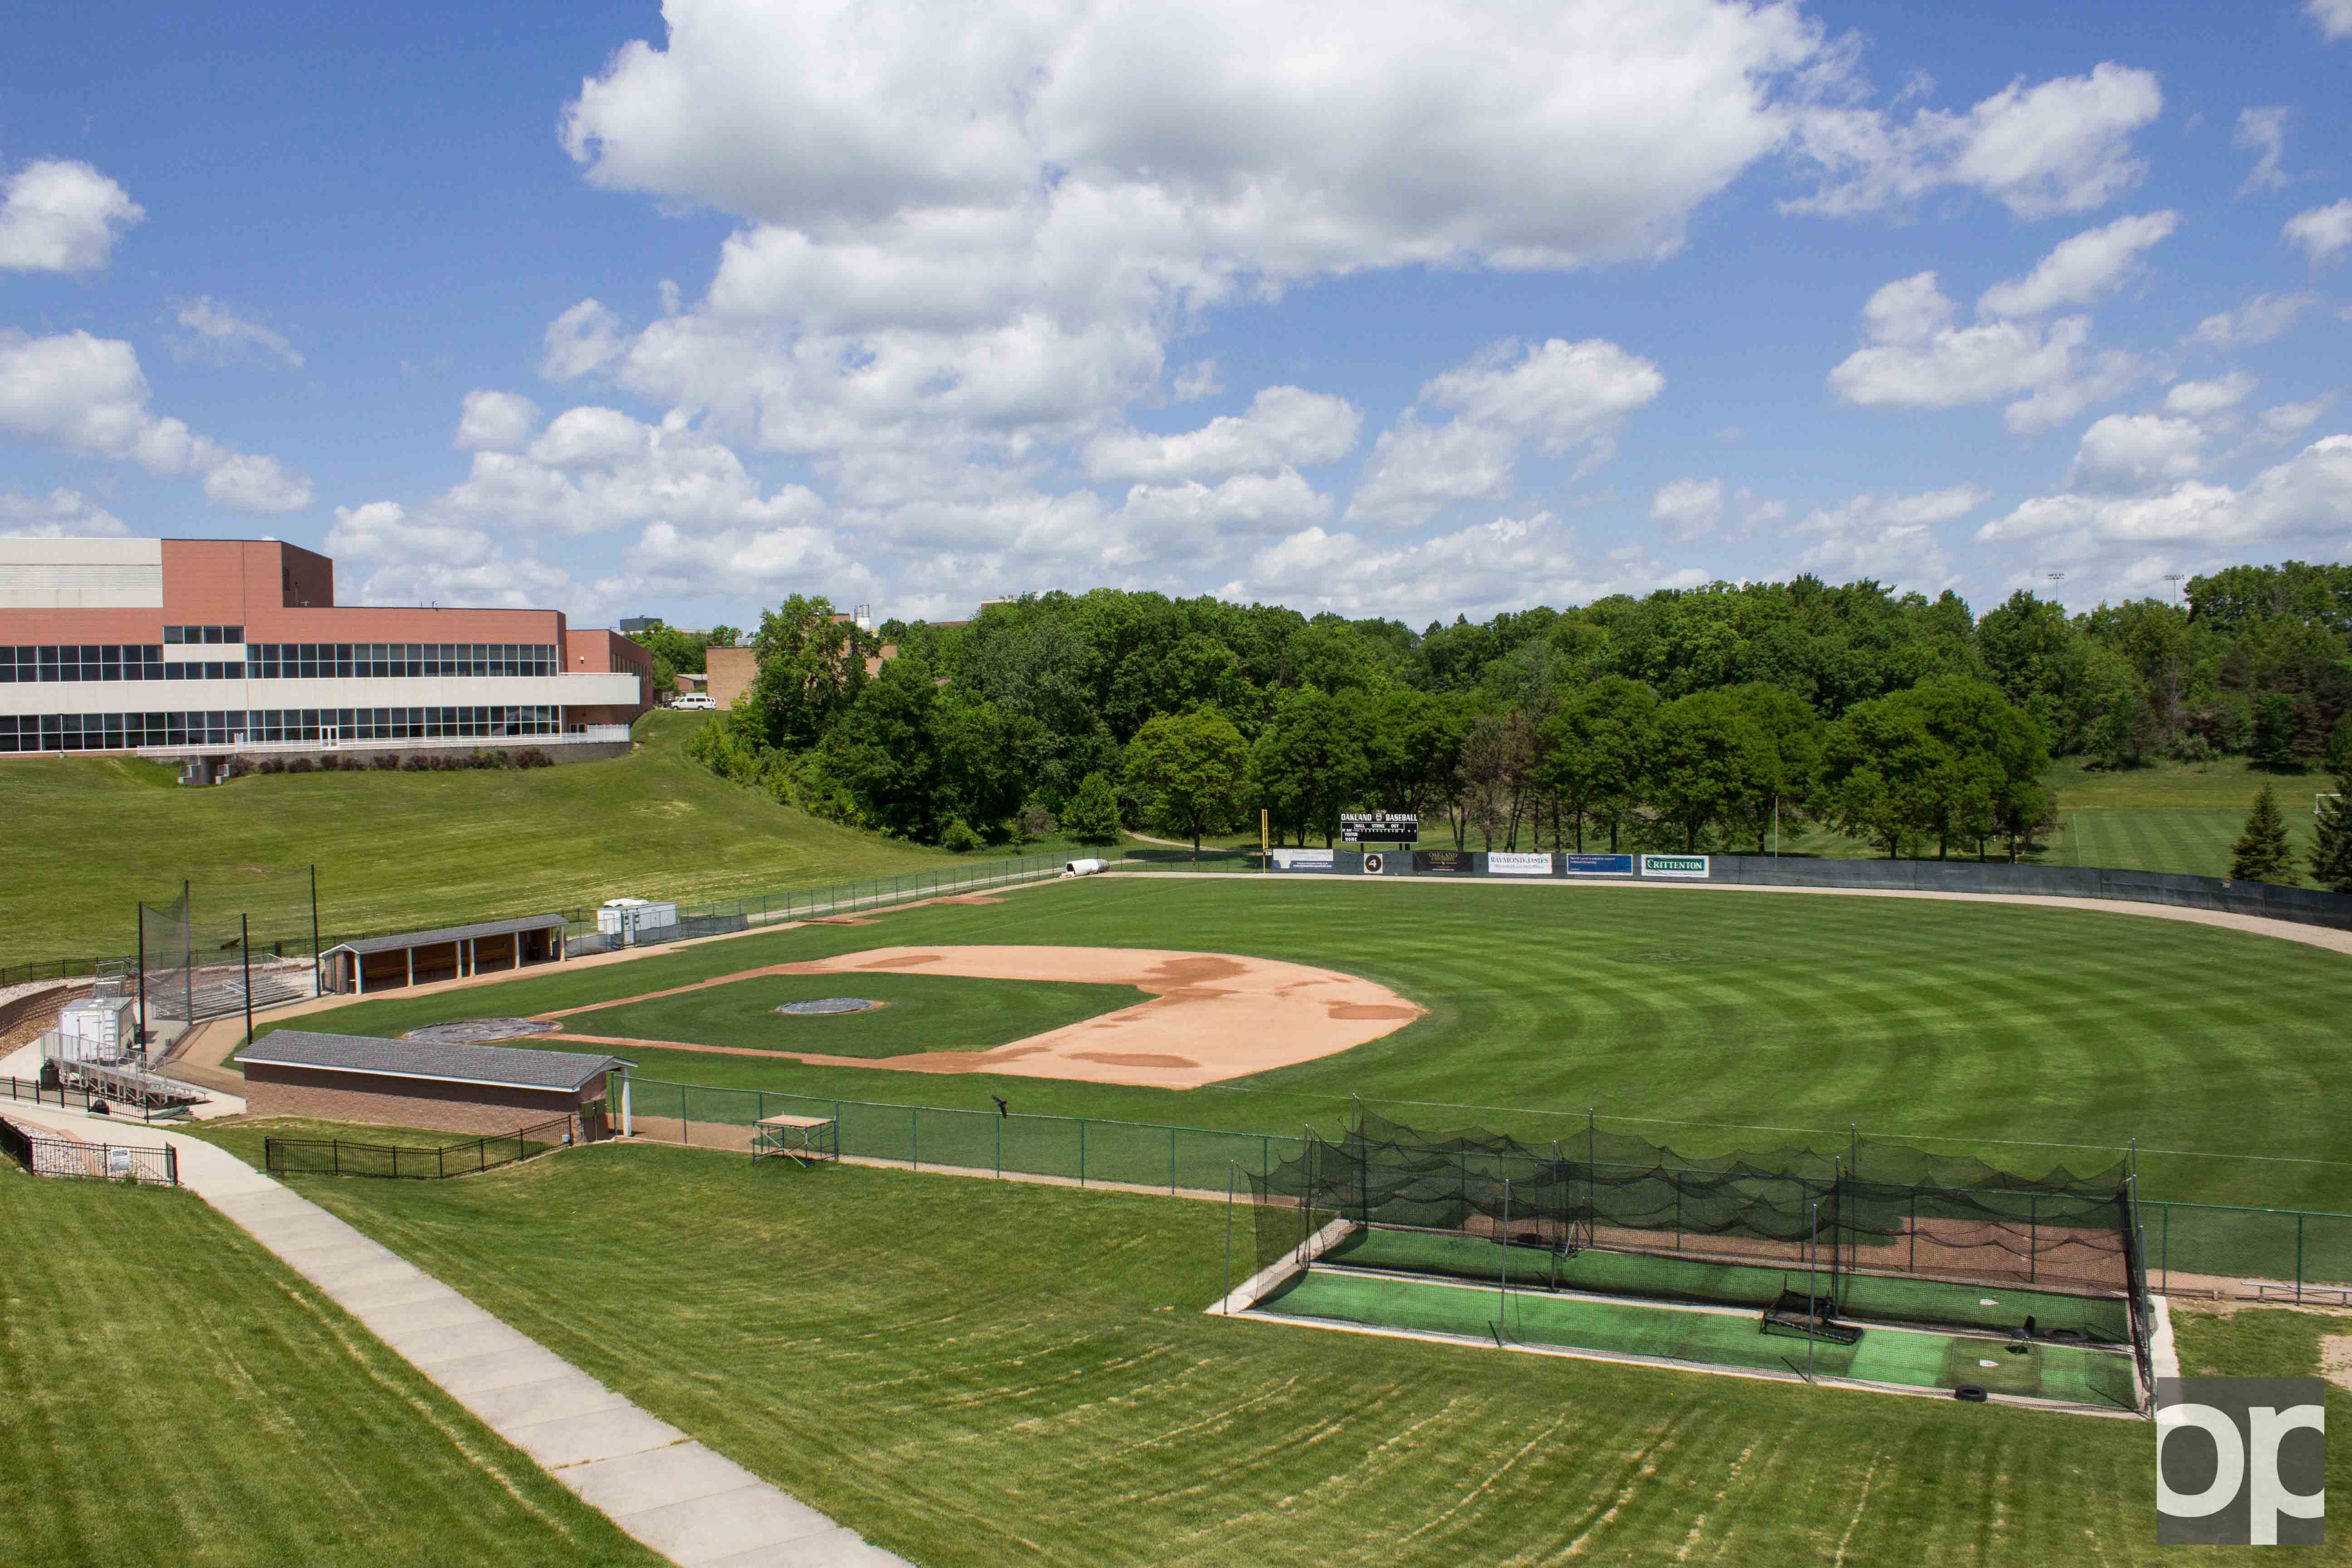 The Oakland Baseball Field is located in the lower fields, next to the Recreation Center and the soccer field.